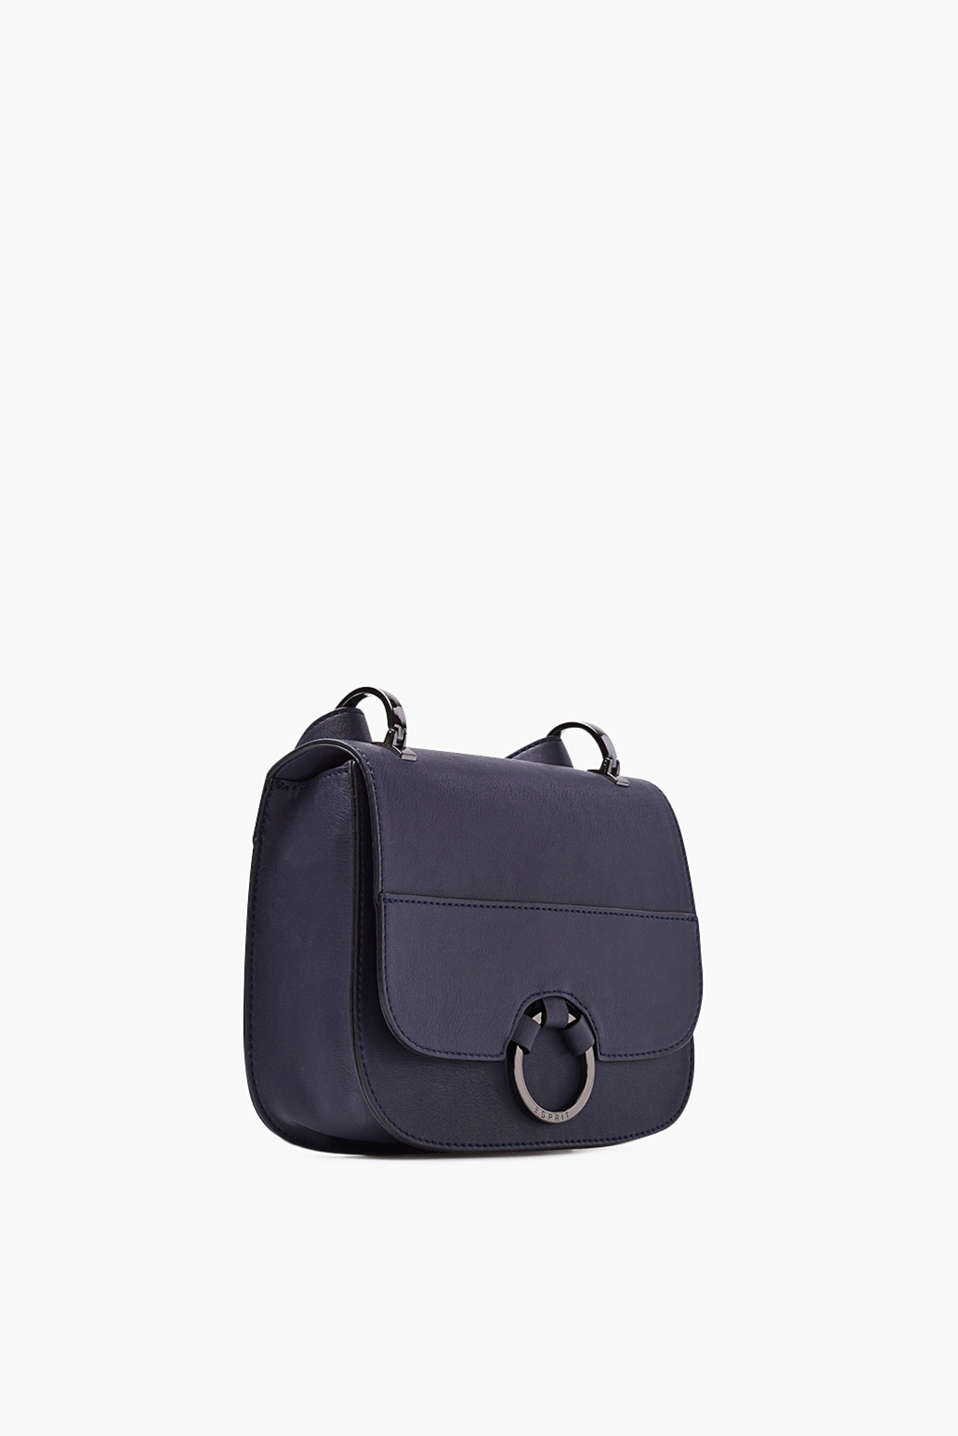 Shoulder bag in imitation leather